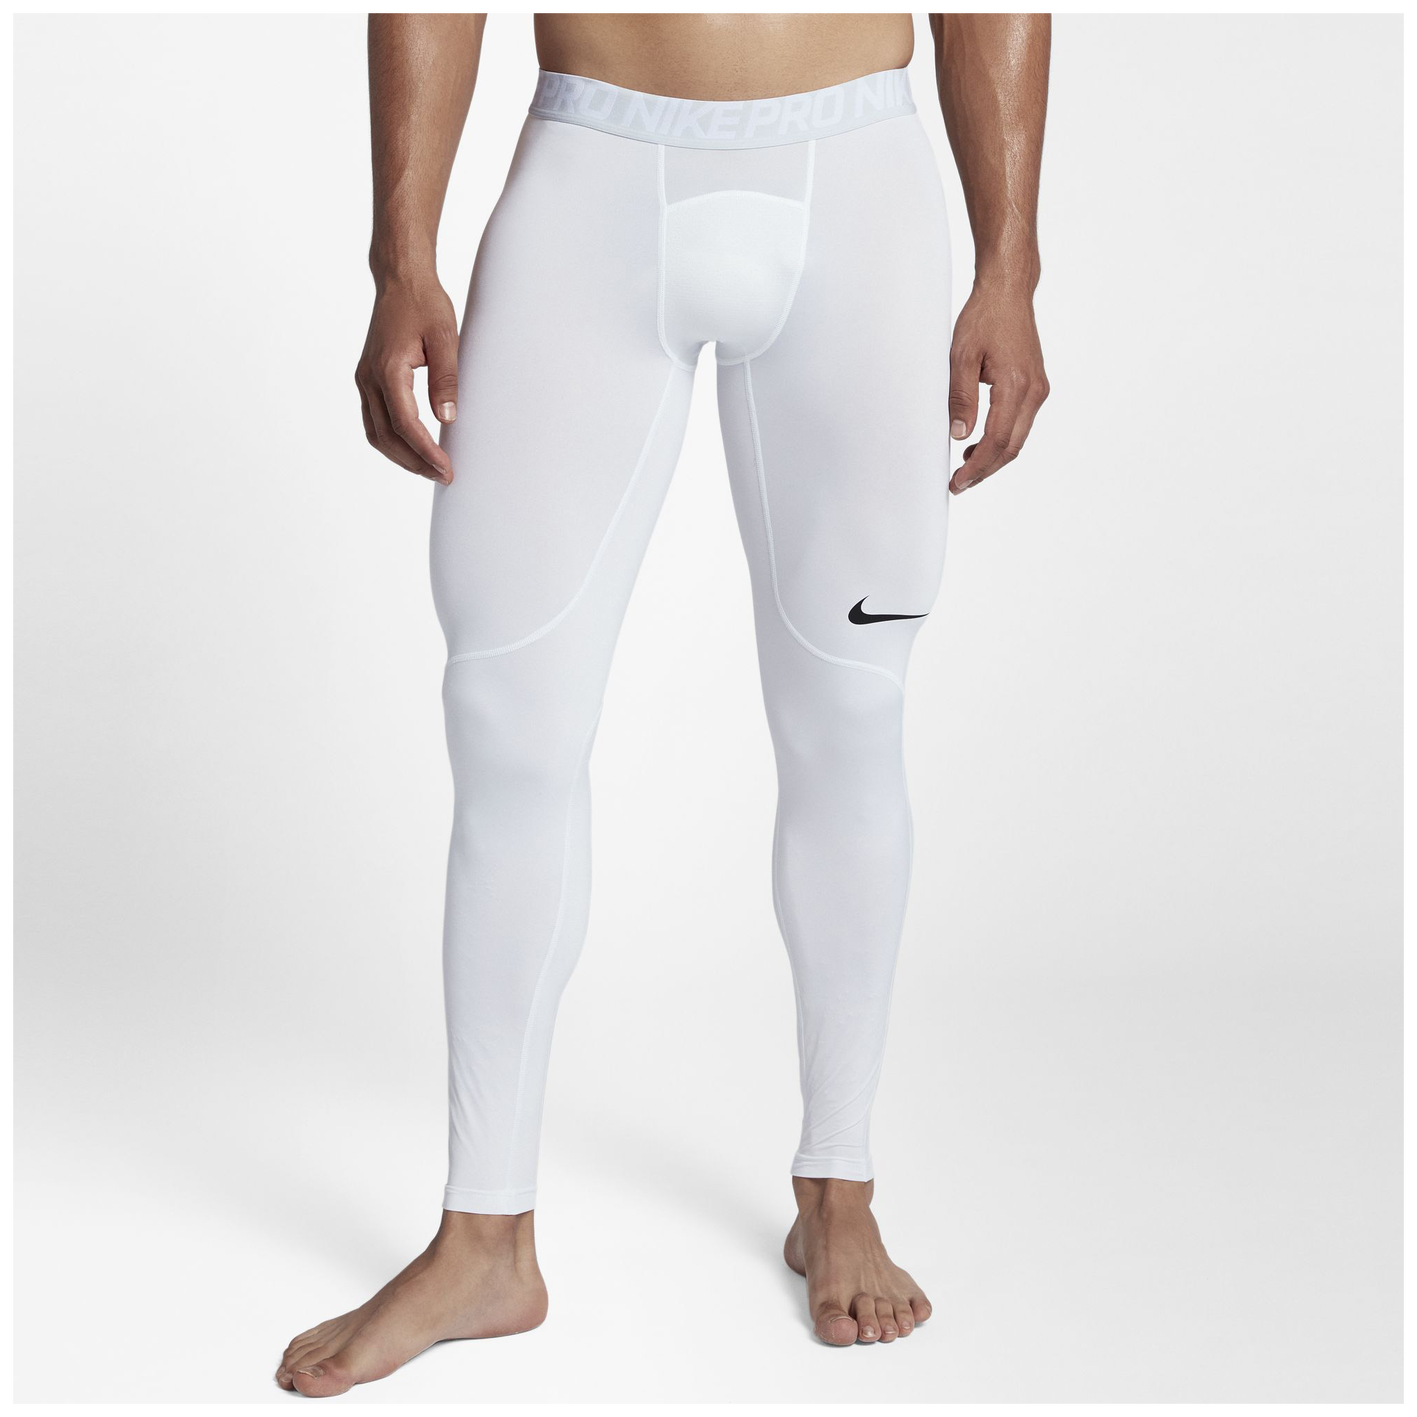 573feb116a4233 Nike Pro Compression Tights - Men s - Training - Clothing - White ...